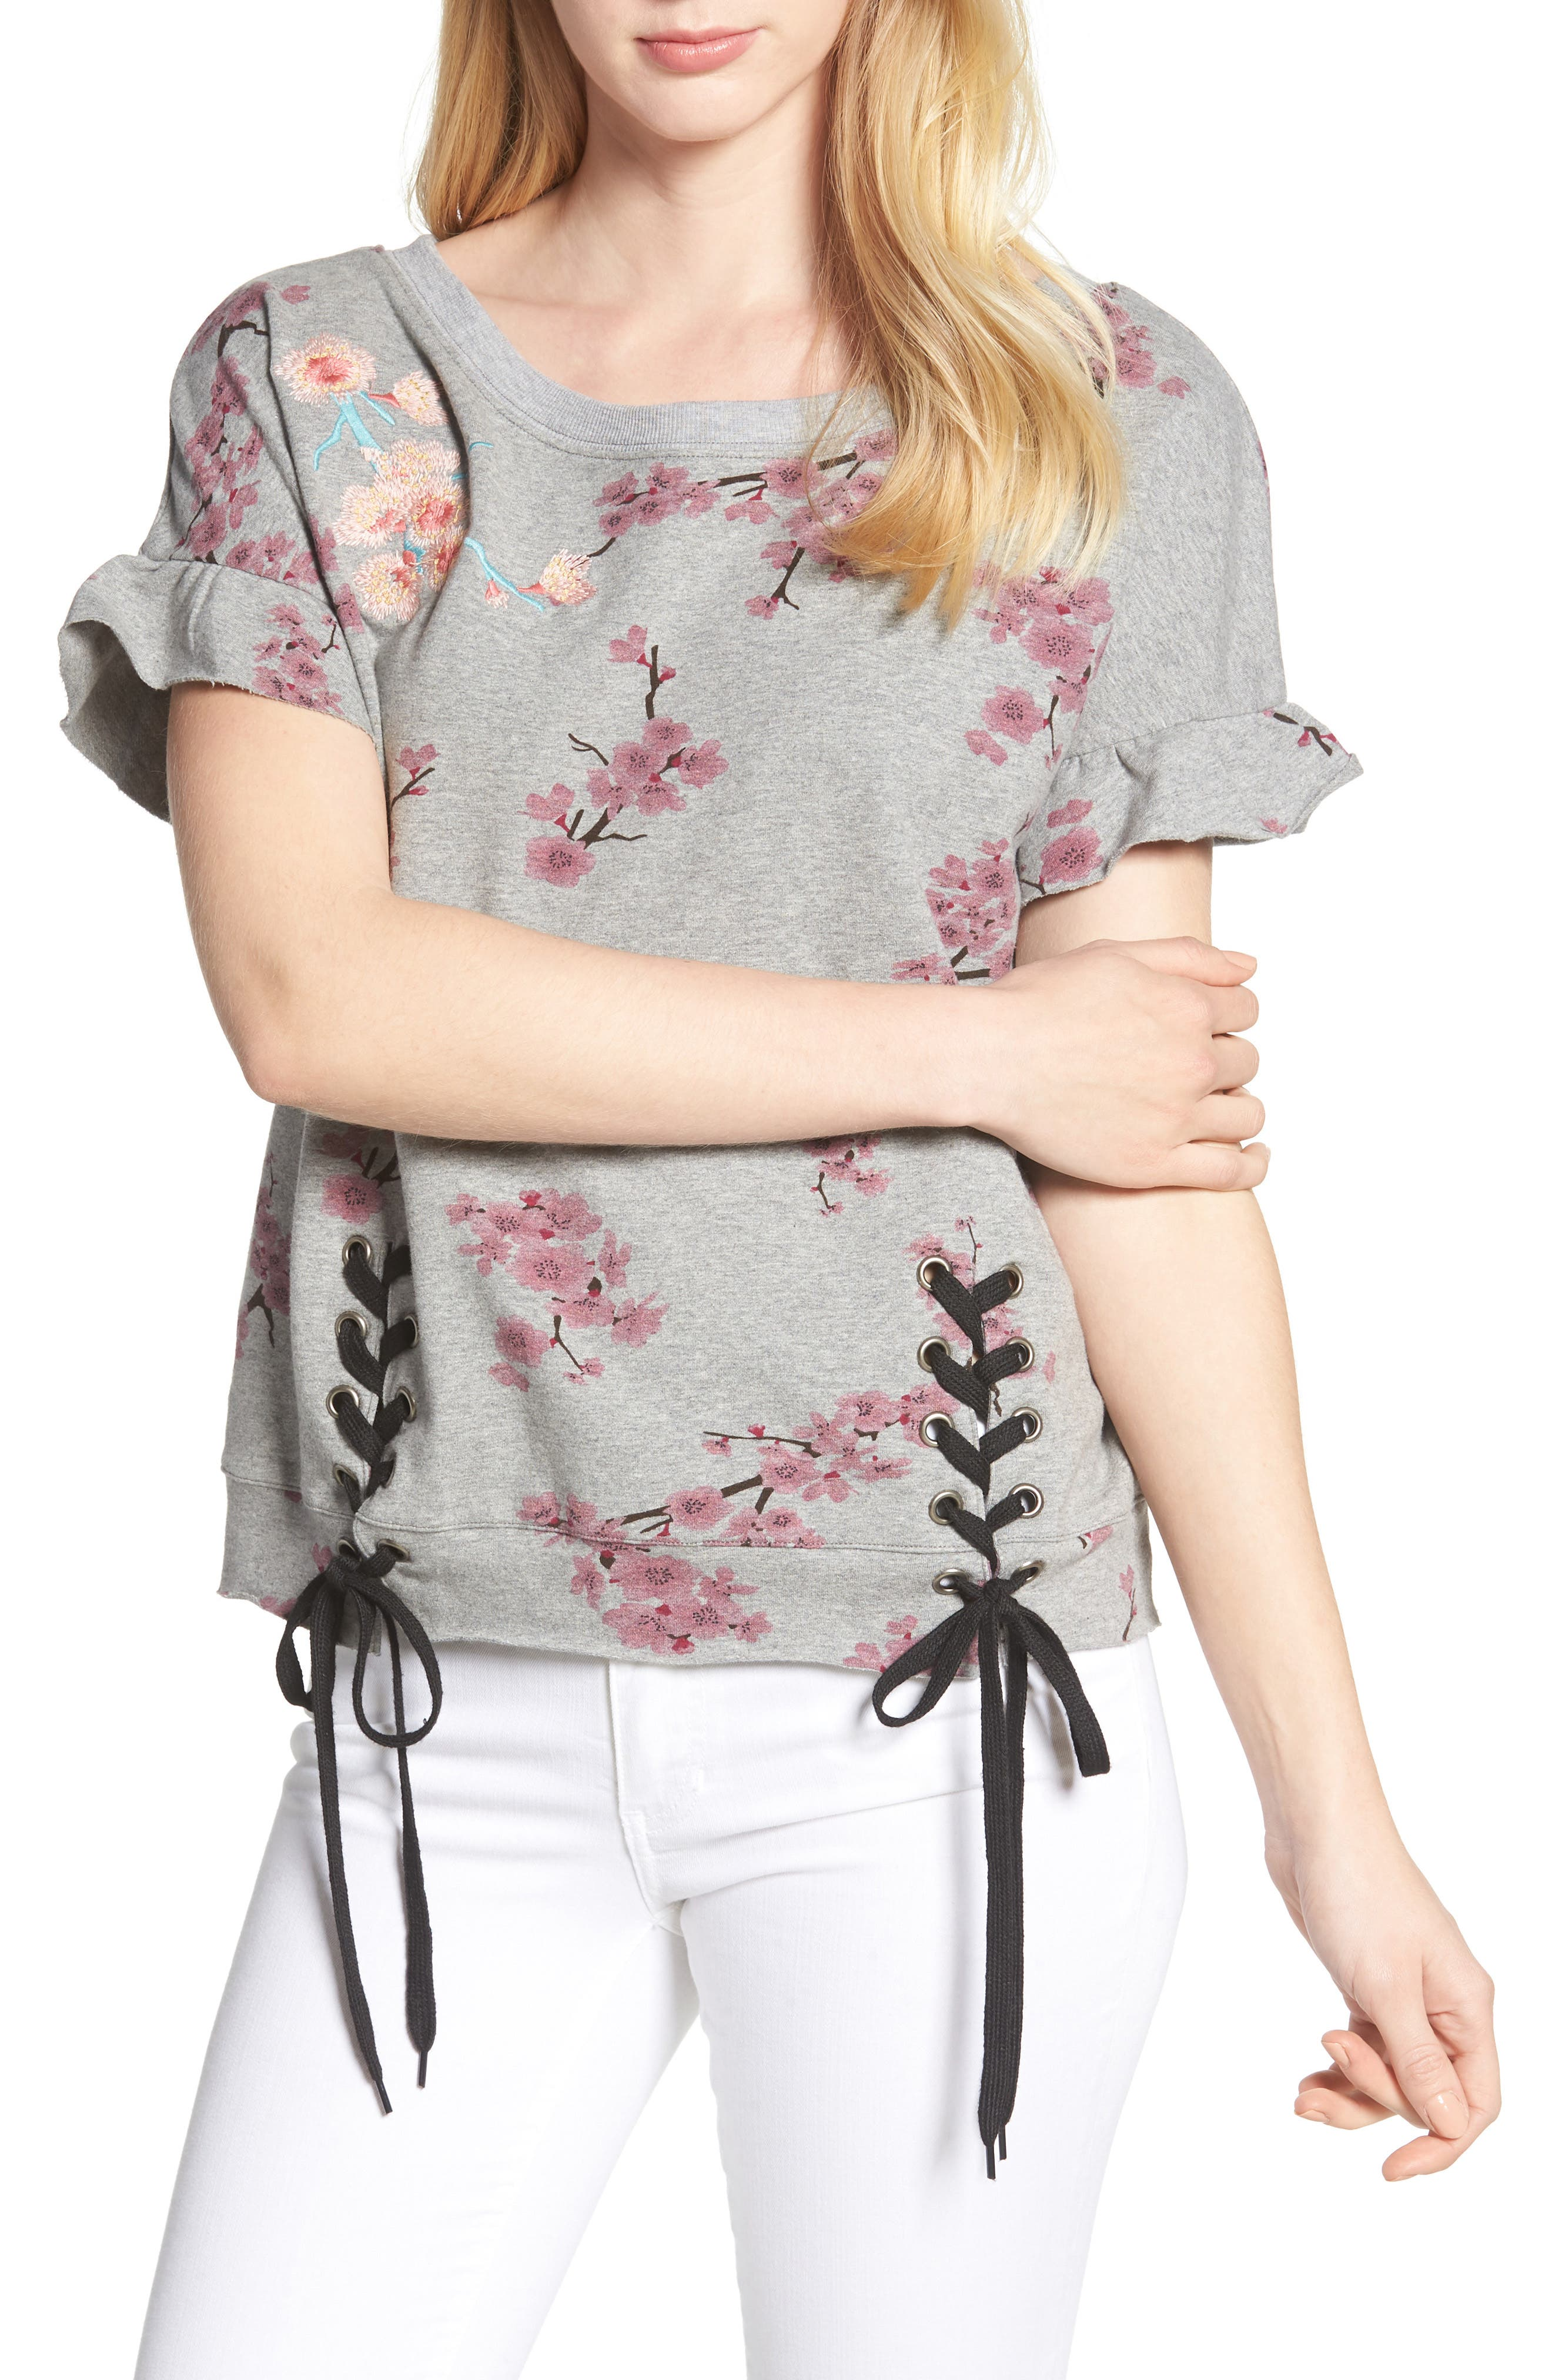 Short Sleeve Lace Up Cherry Blossom Sweatshirt,                             Main thumbnail 1, color,                             Grey Cherry Blossom